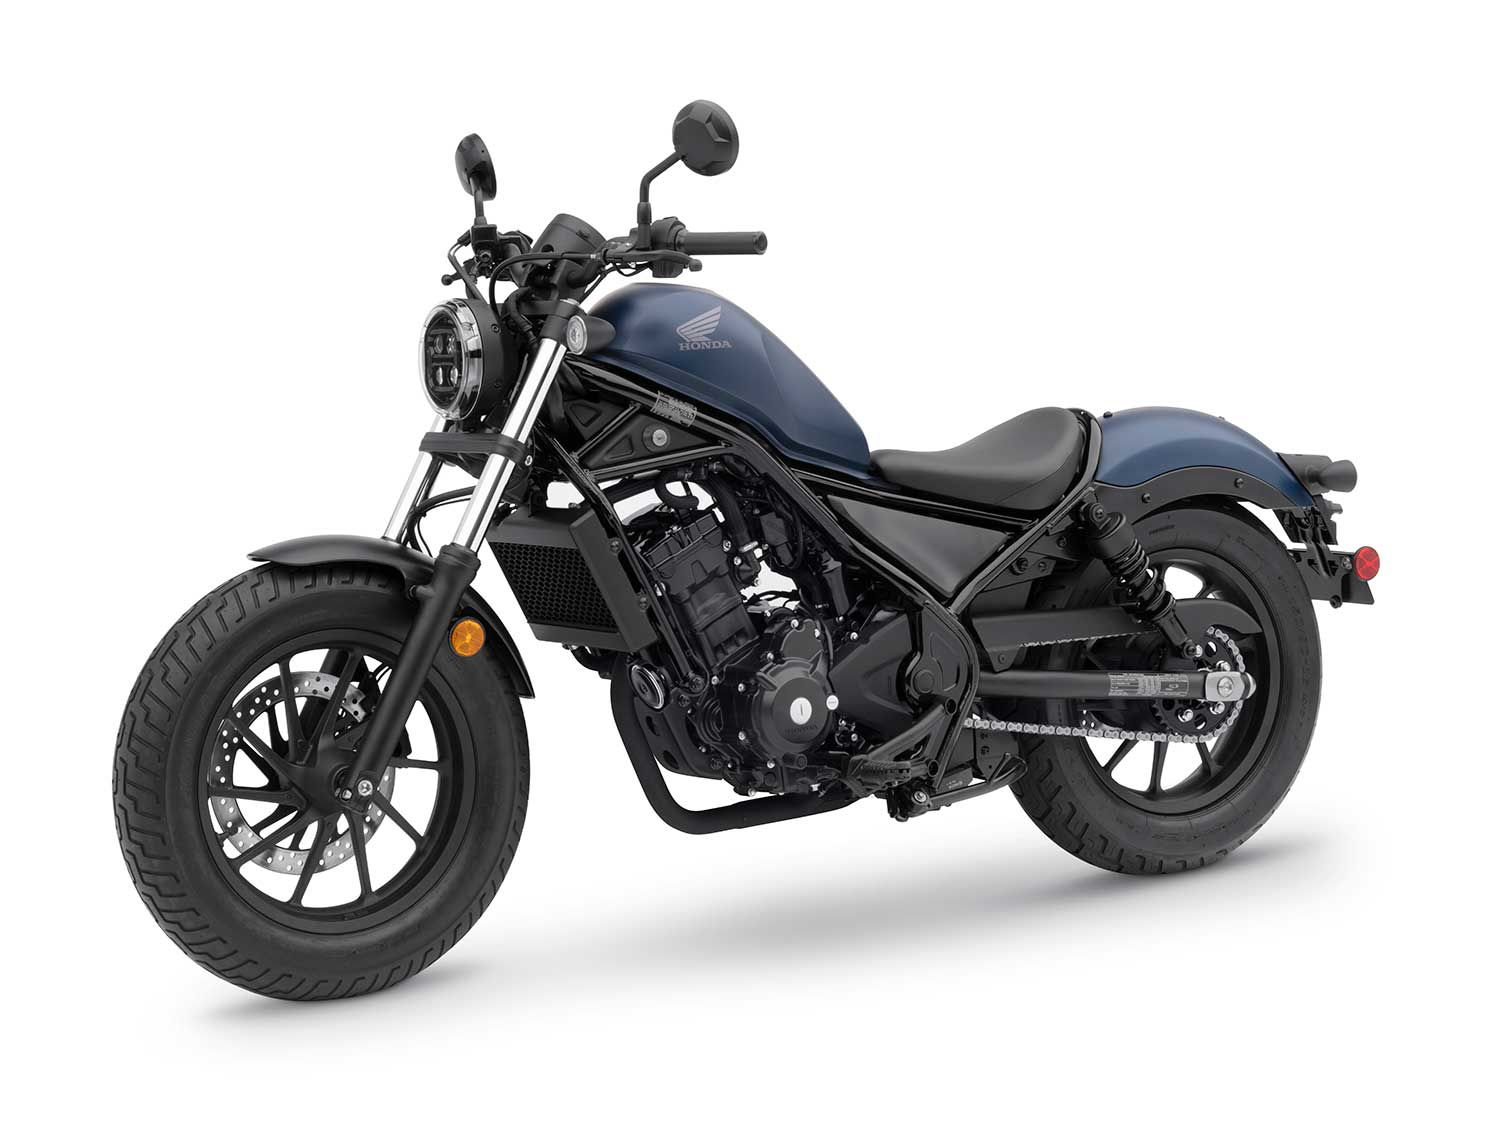 The Honda Rebel 300 comes into 2020 with updated suspension inners and this Matte Blue Jean Metallic paint scheme.